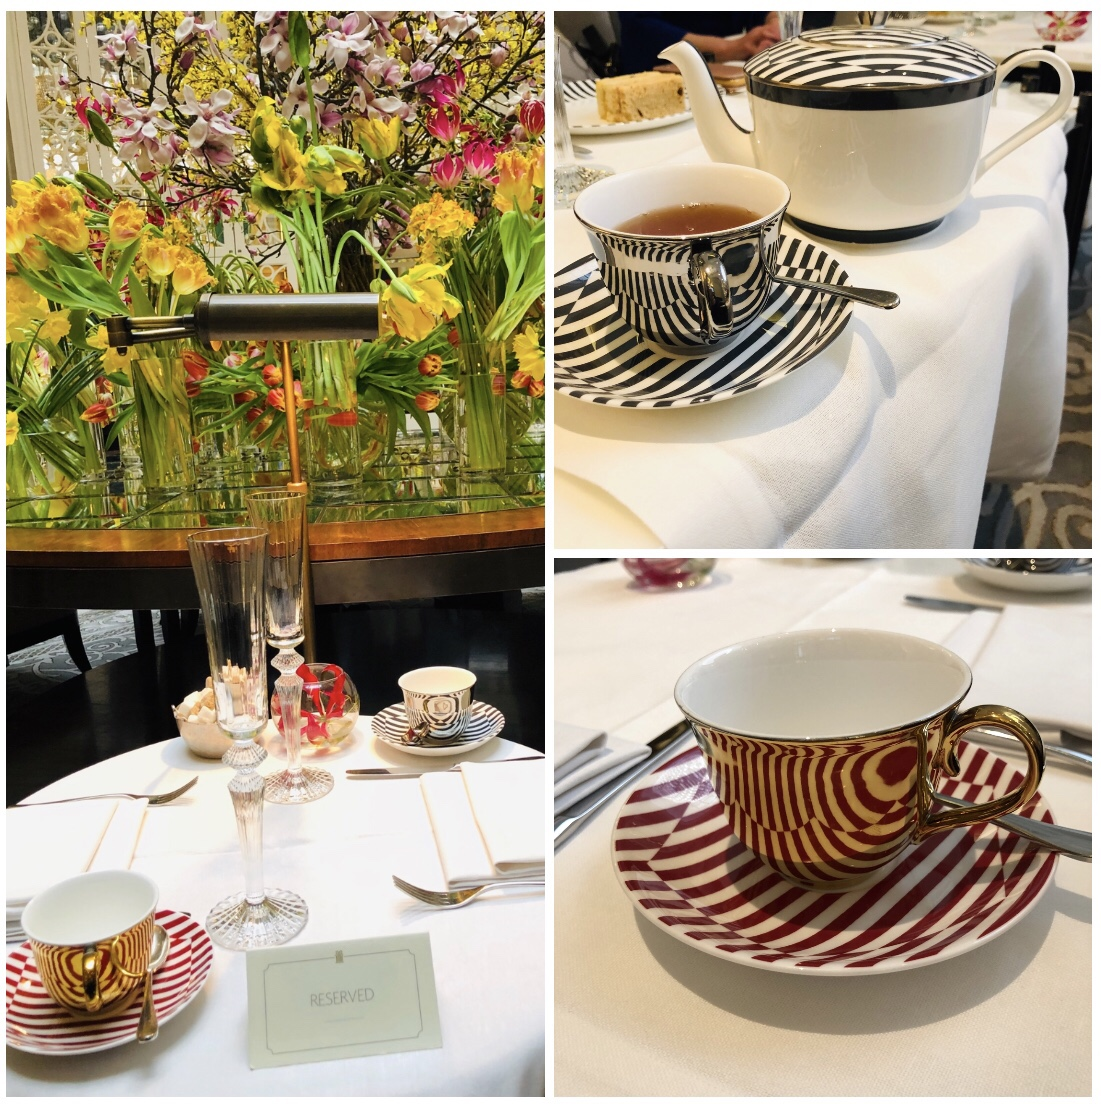 Corinthia Hotel London Afternoon tea Prices